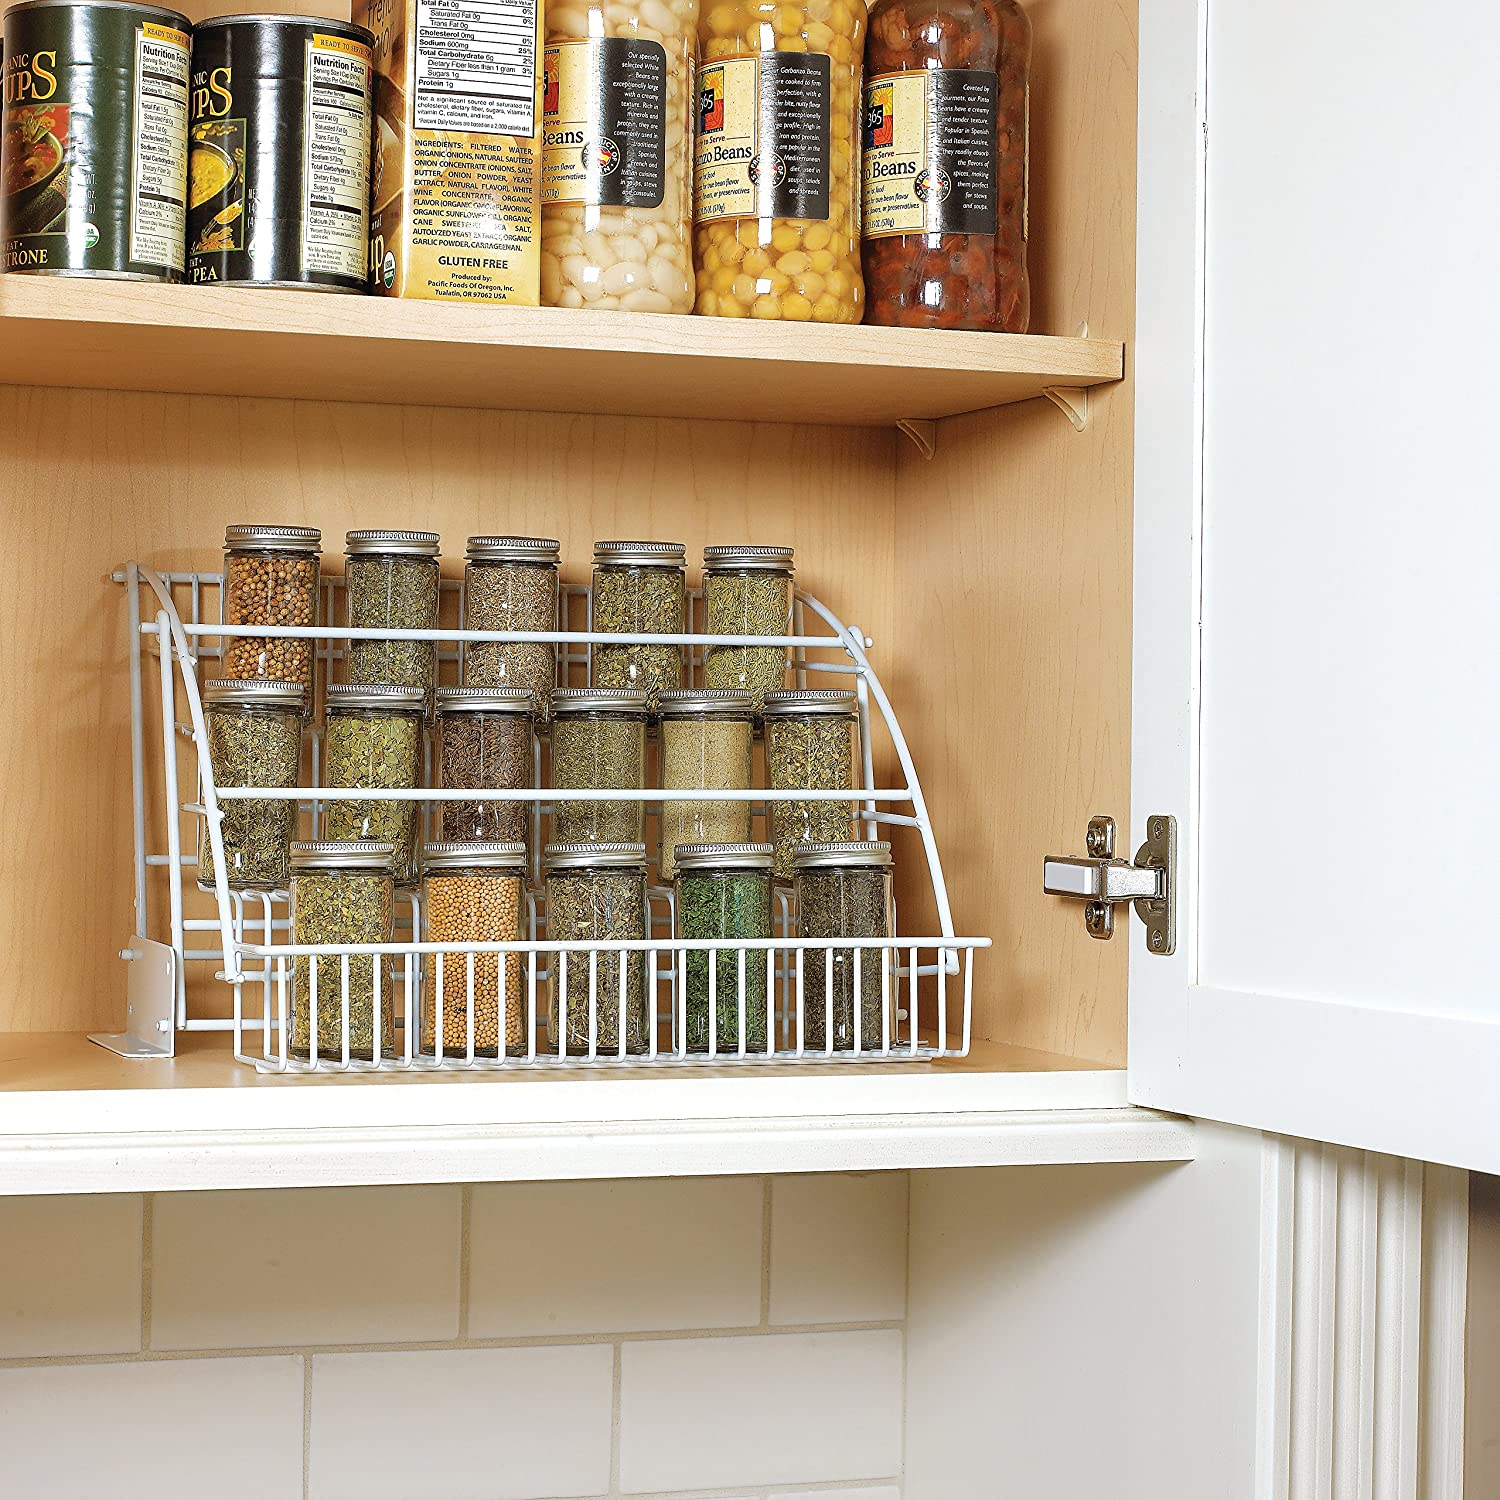 15 best spice organizers for kitchens